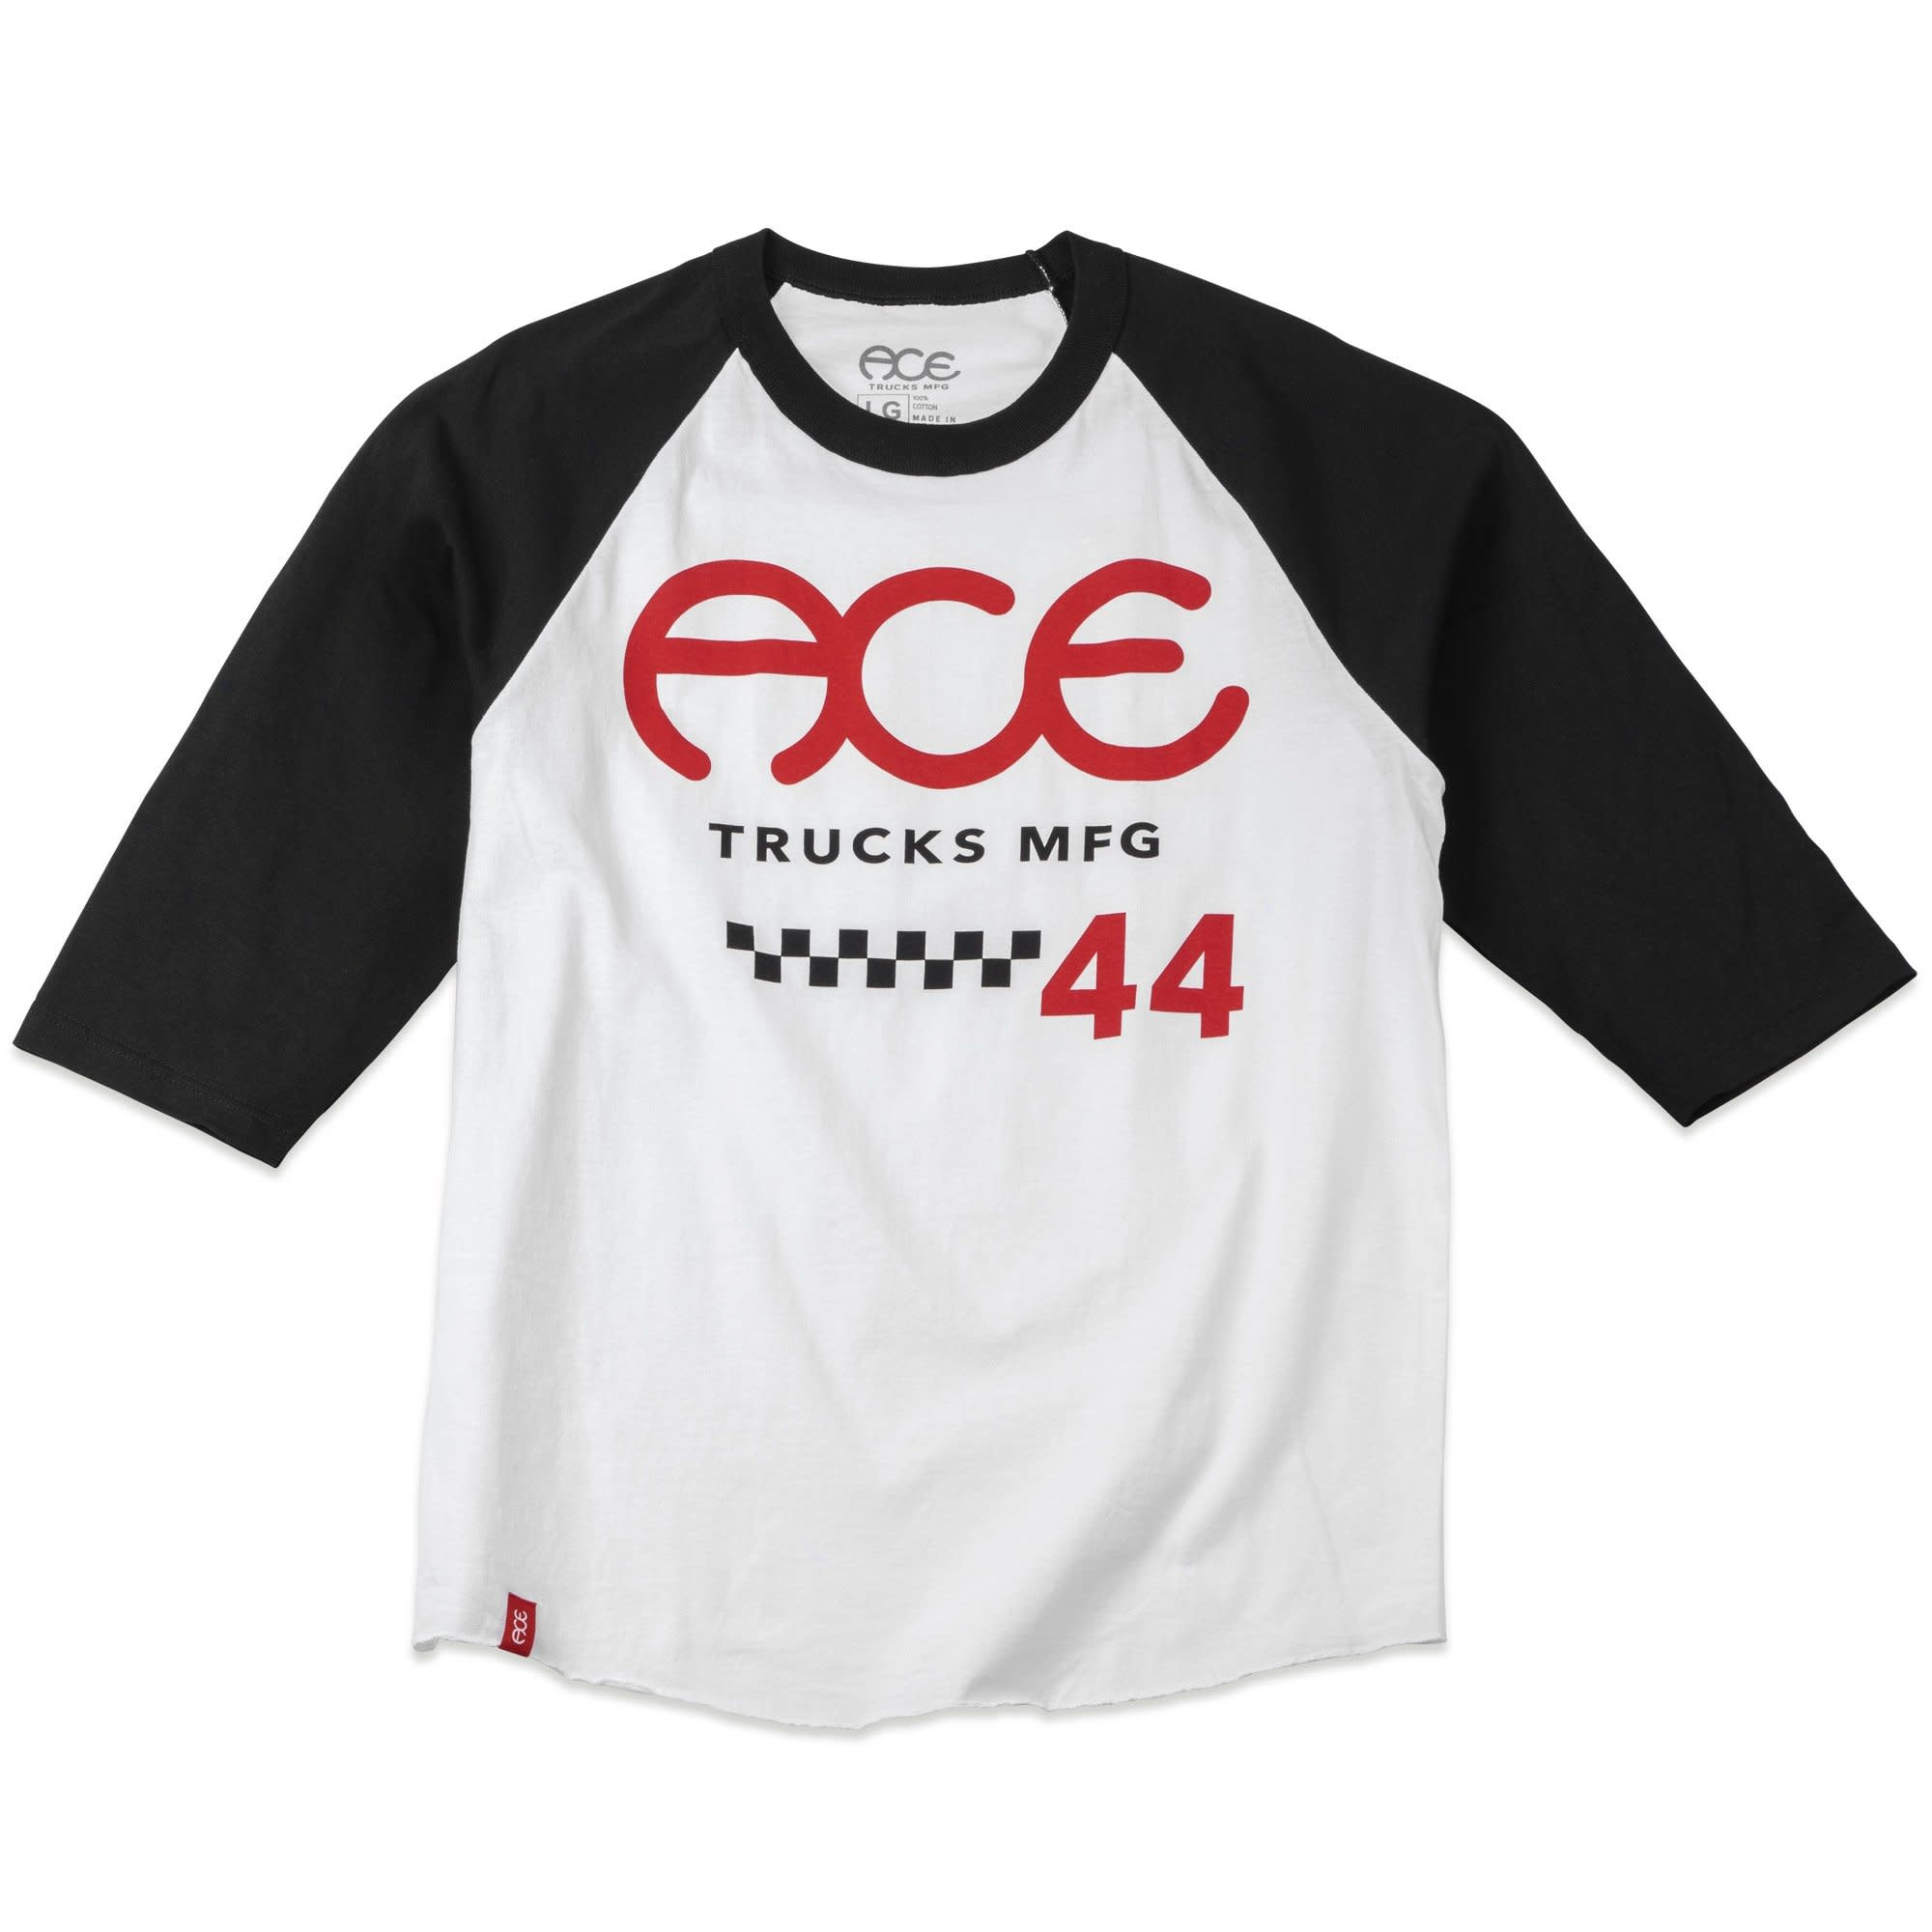 Ace Skateboard Truck MFG. 415 Raglan White/Black Tee